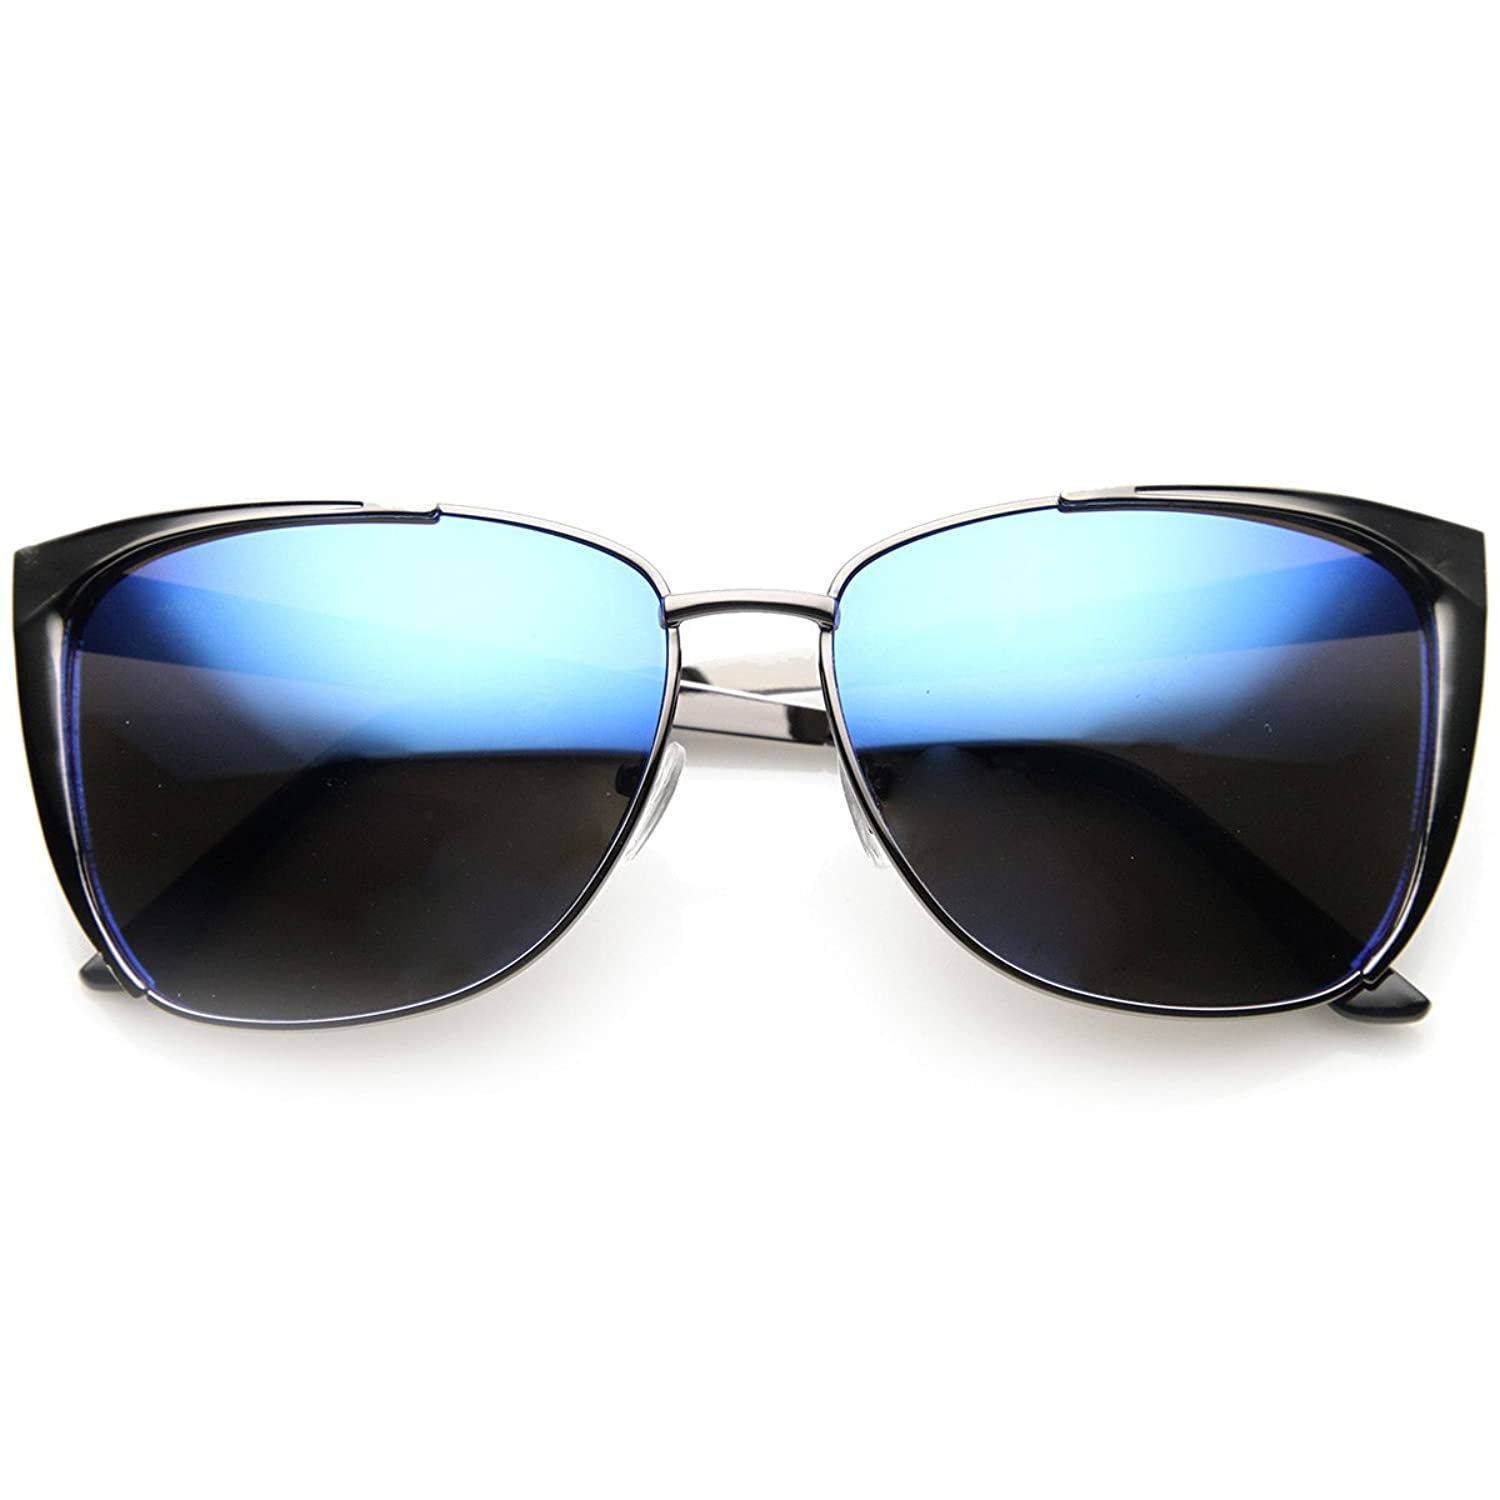 zeroUV - Modern Thin Metal Frame Color Flash Mirrored Lens ...